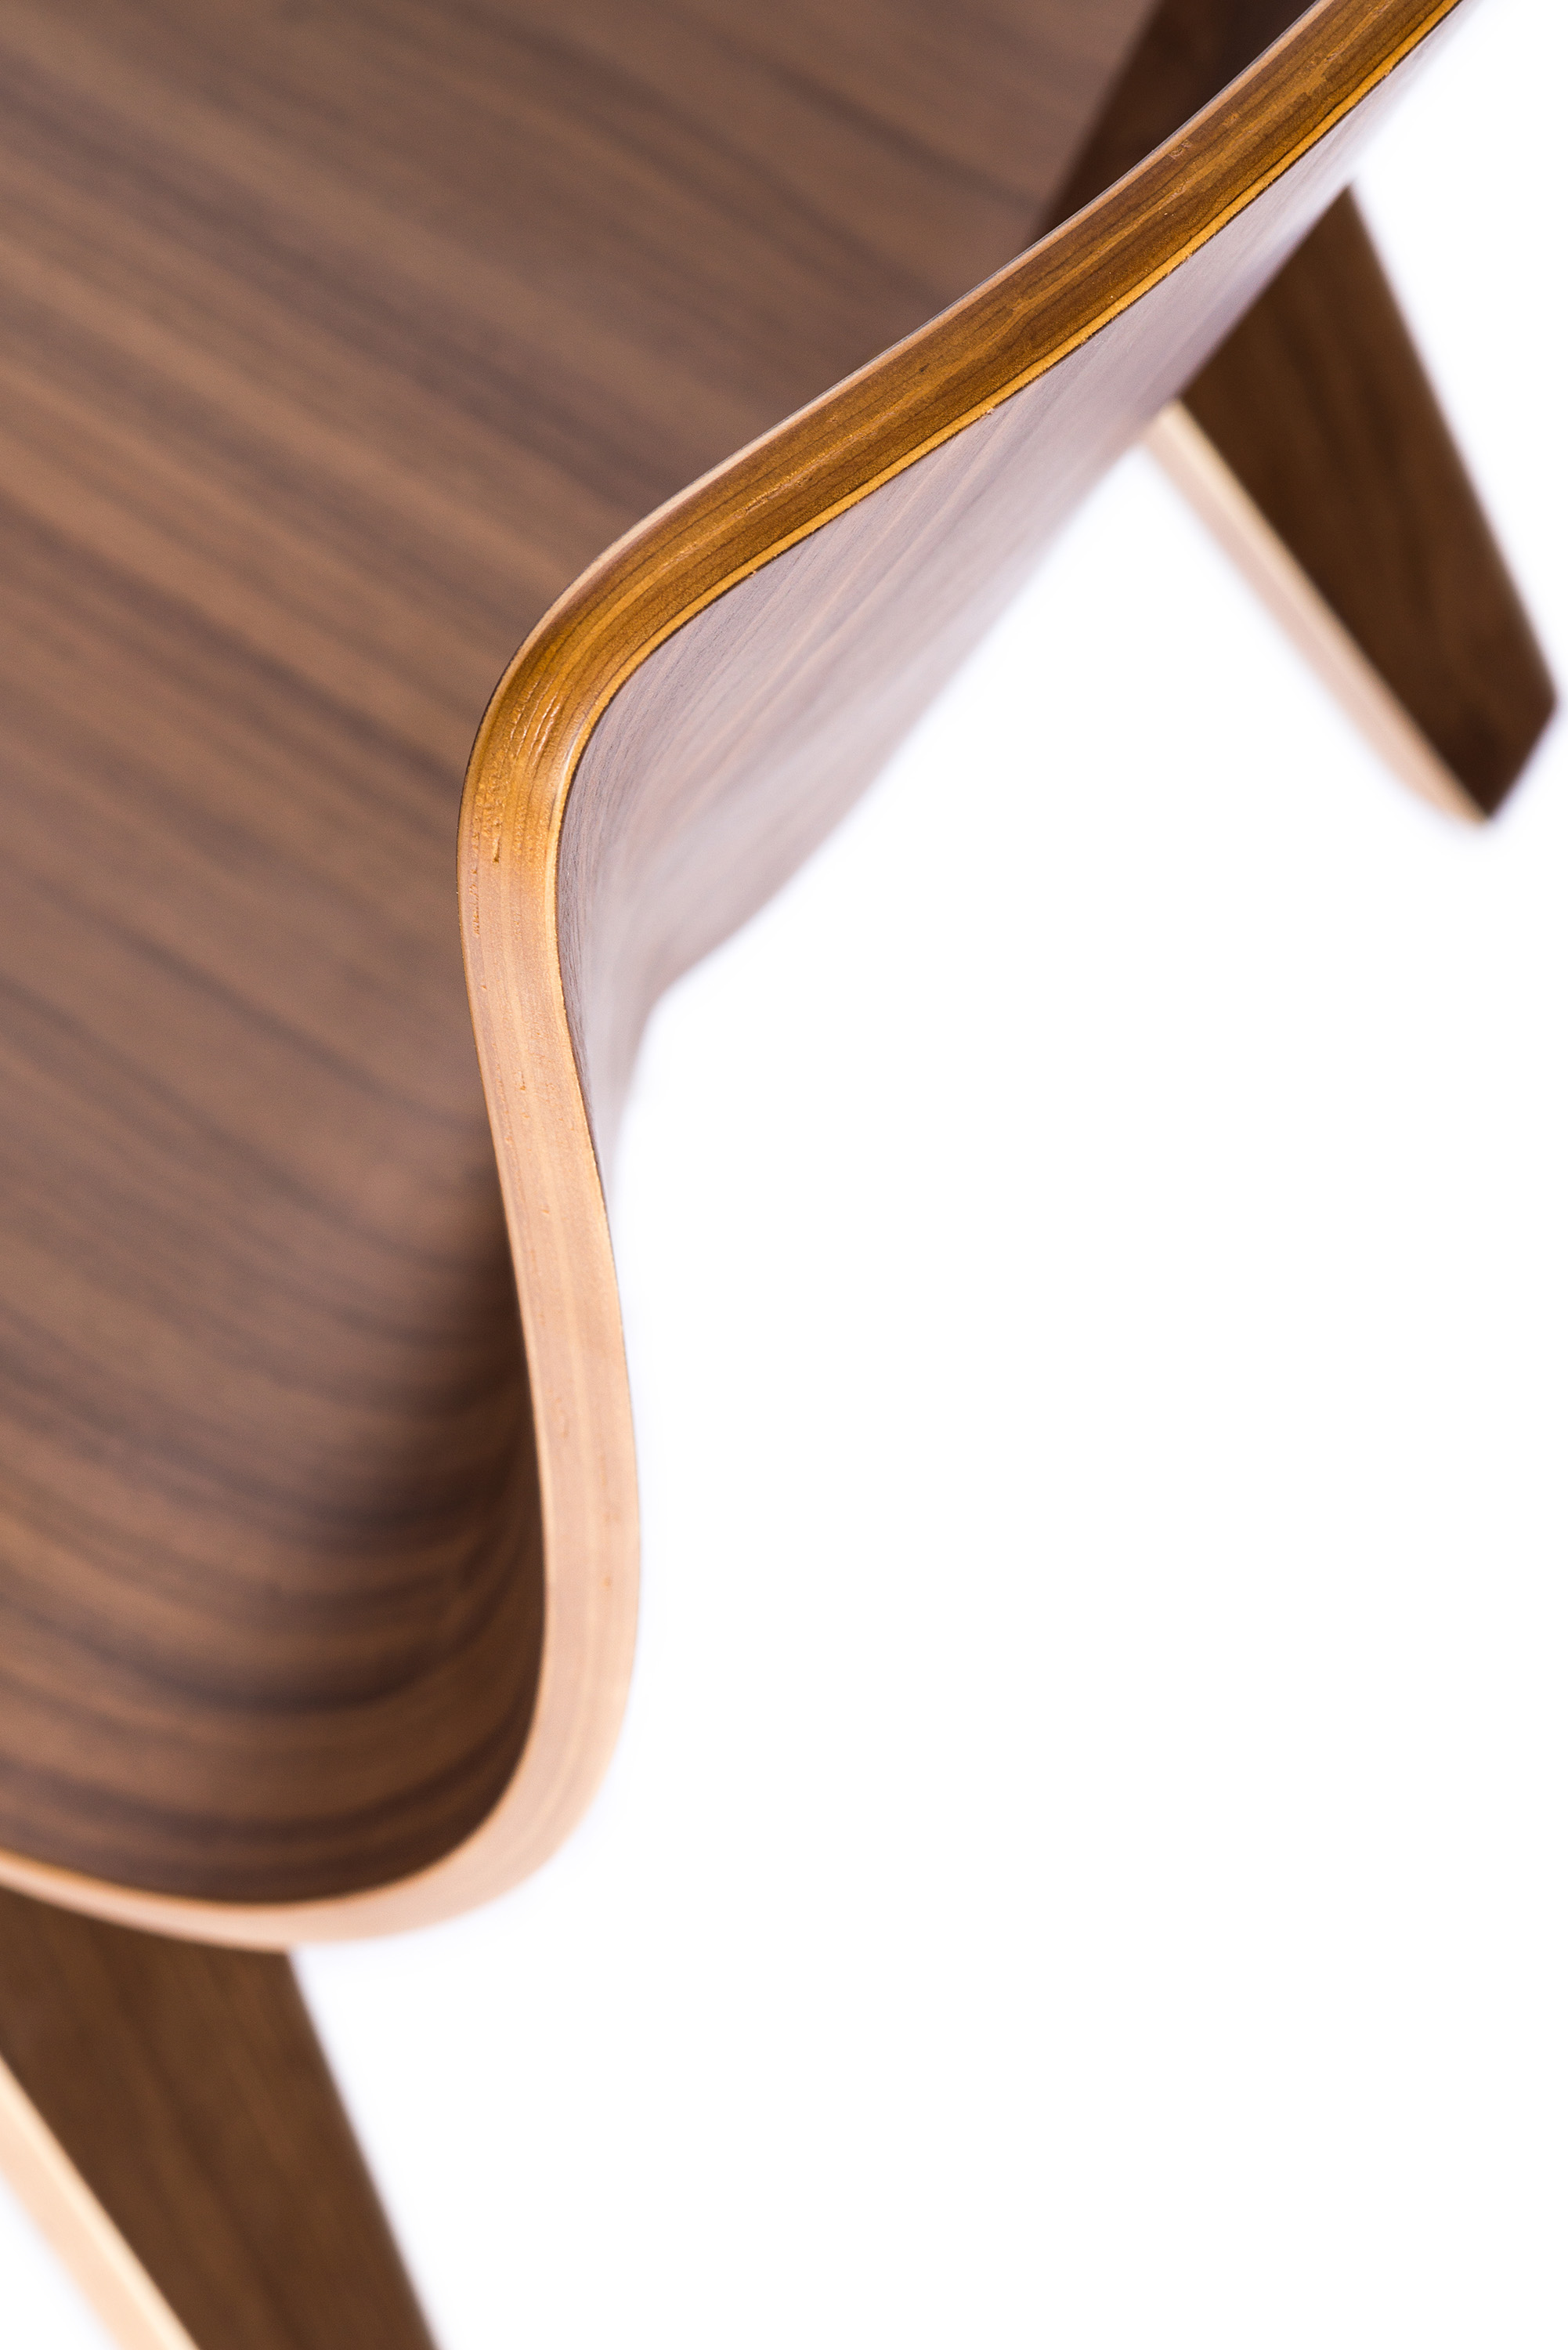 V Lounge Chair detail